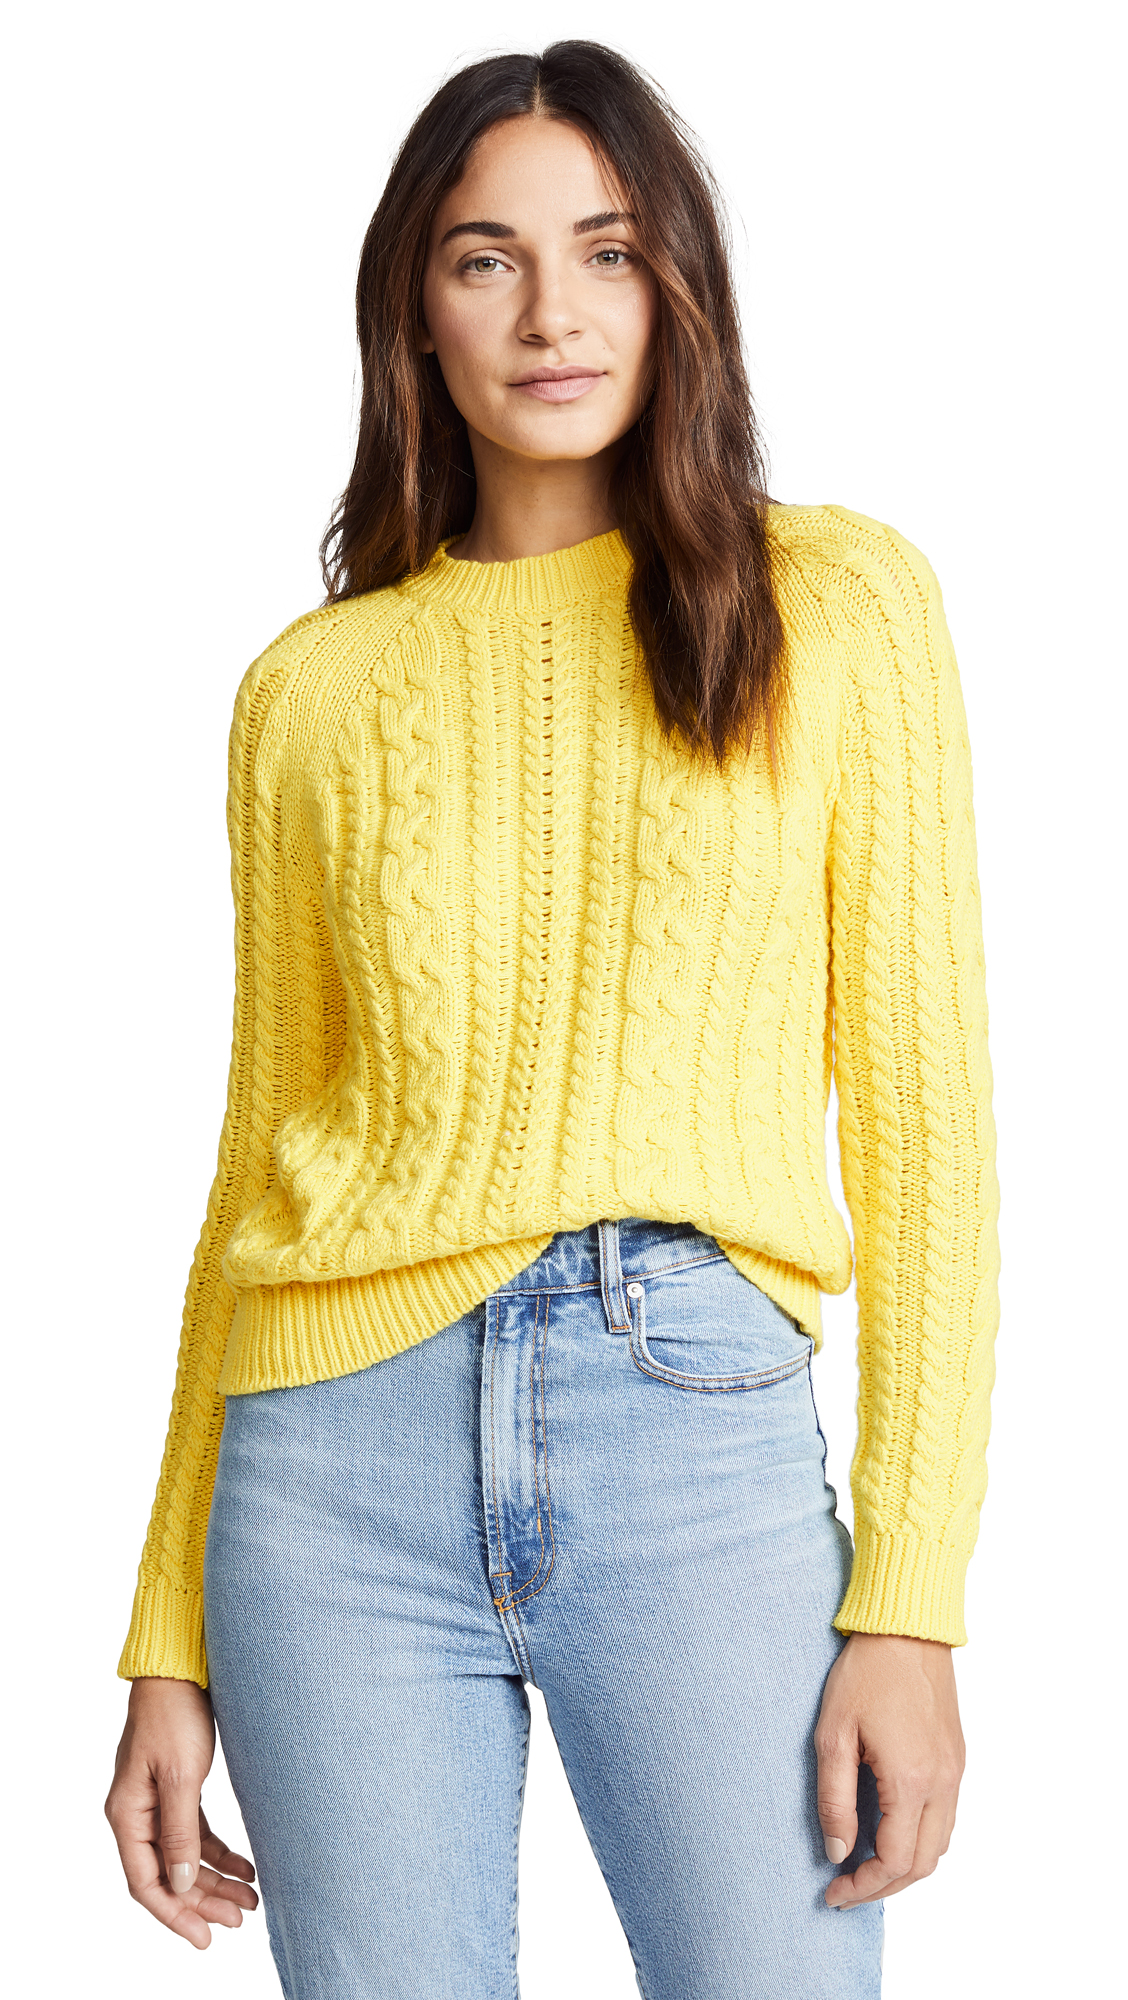 BOP BASICS Boxy Cable Knit Sweater in Bright Yellow